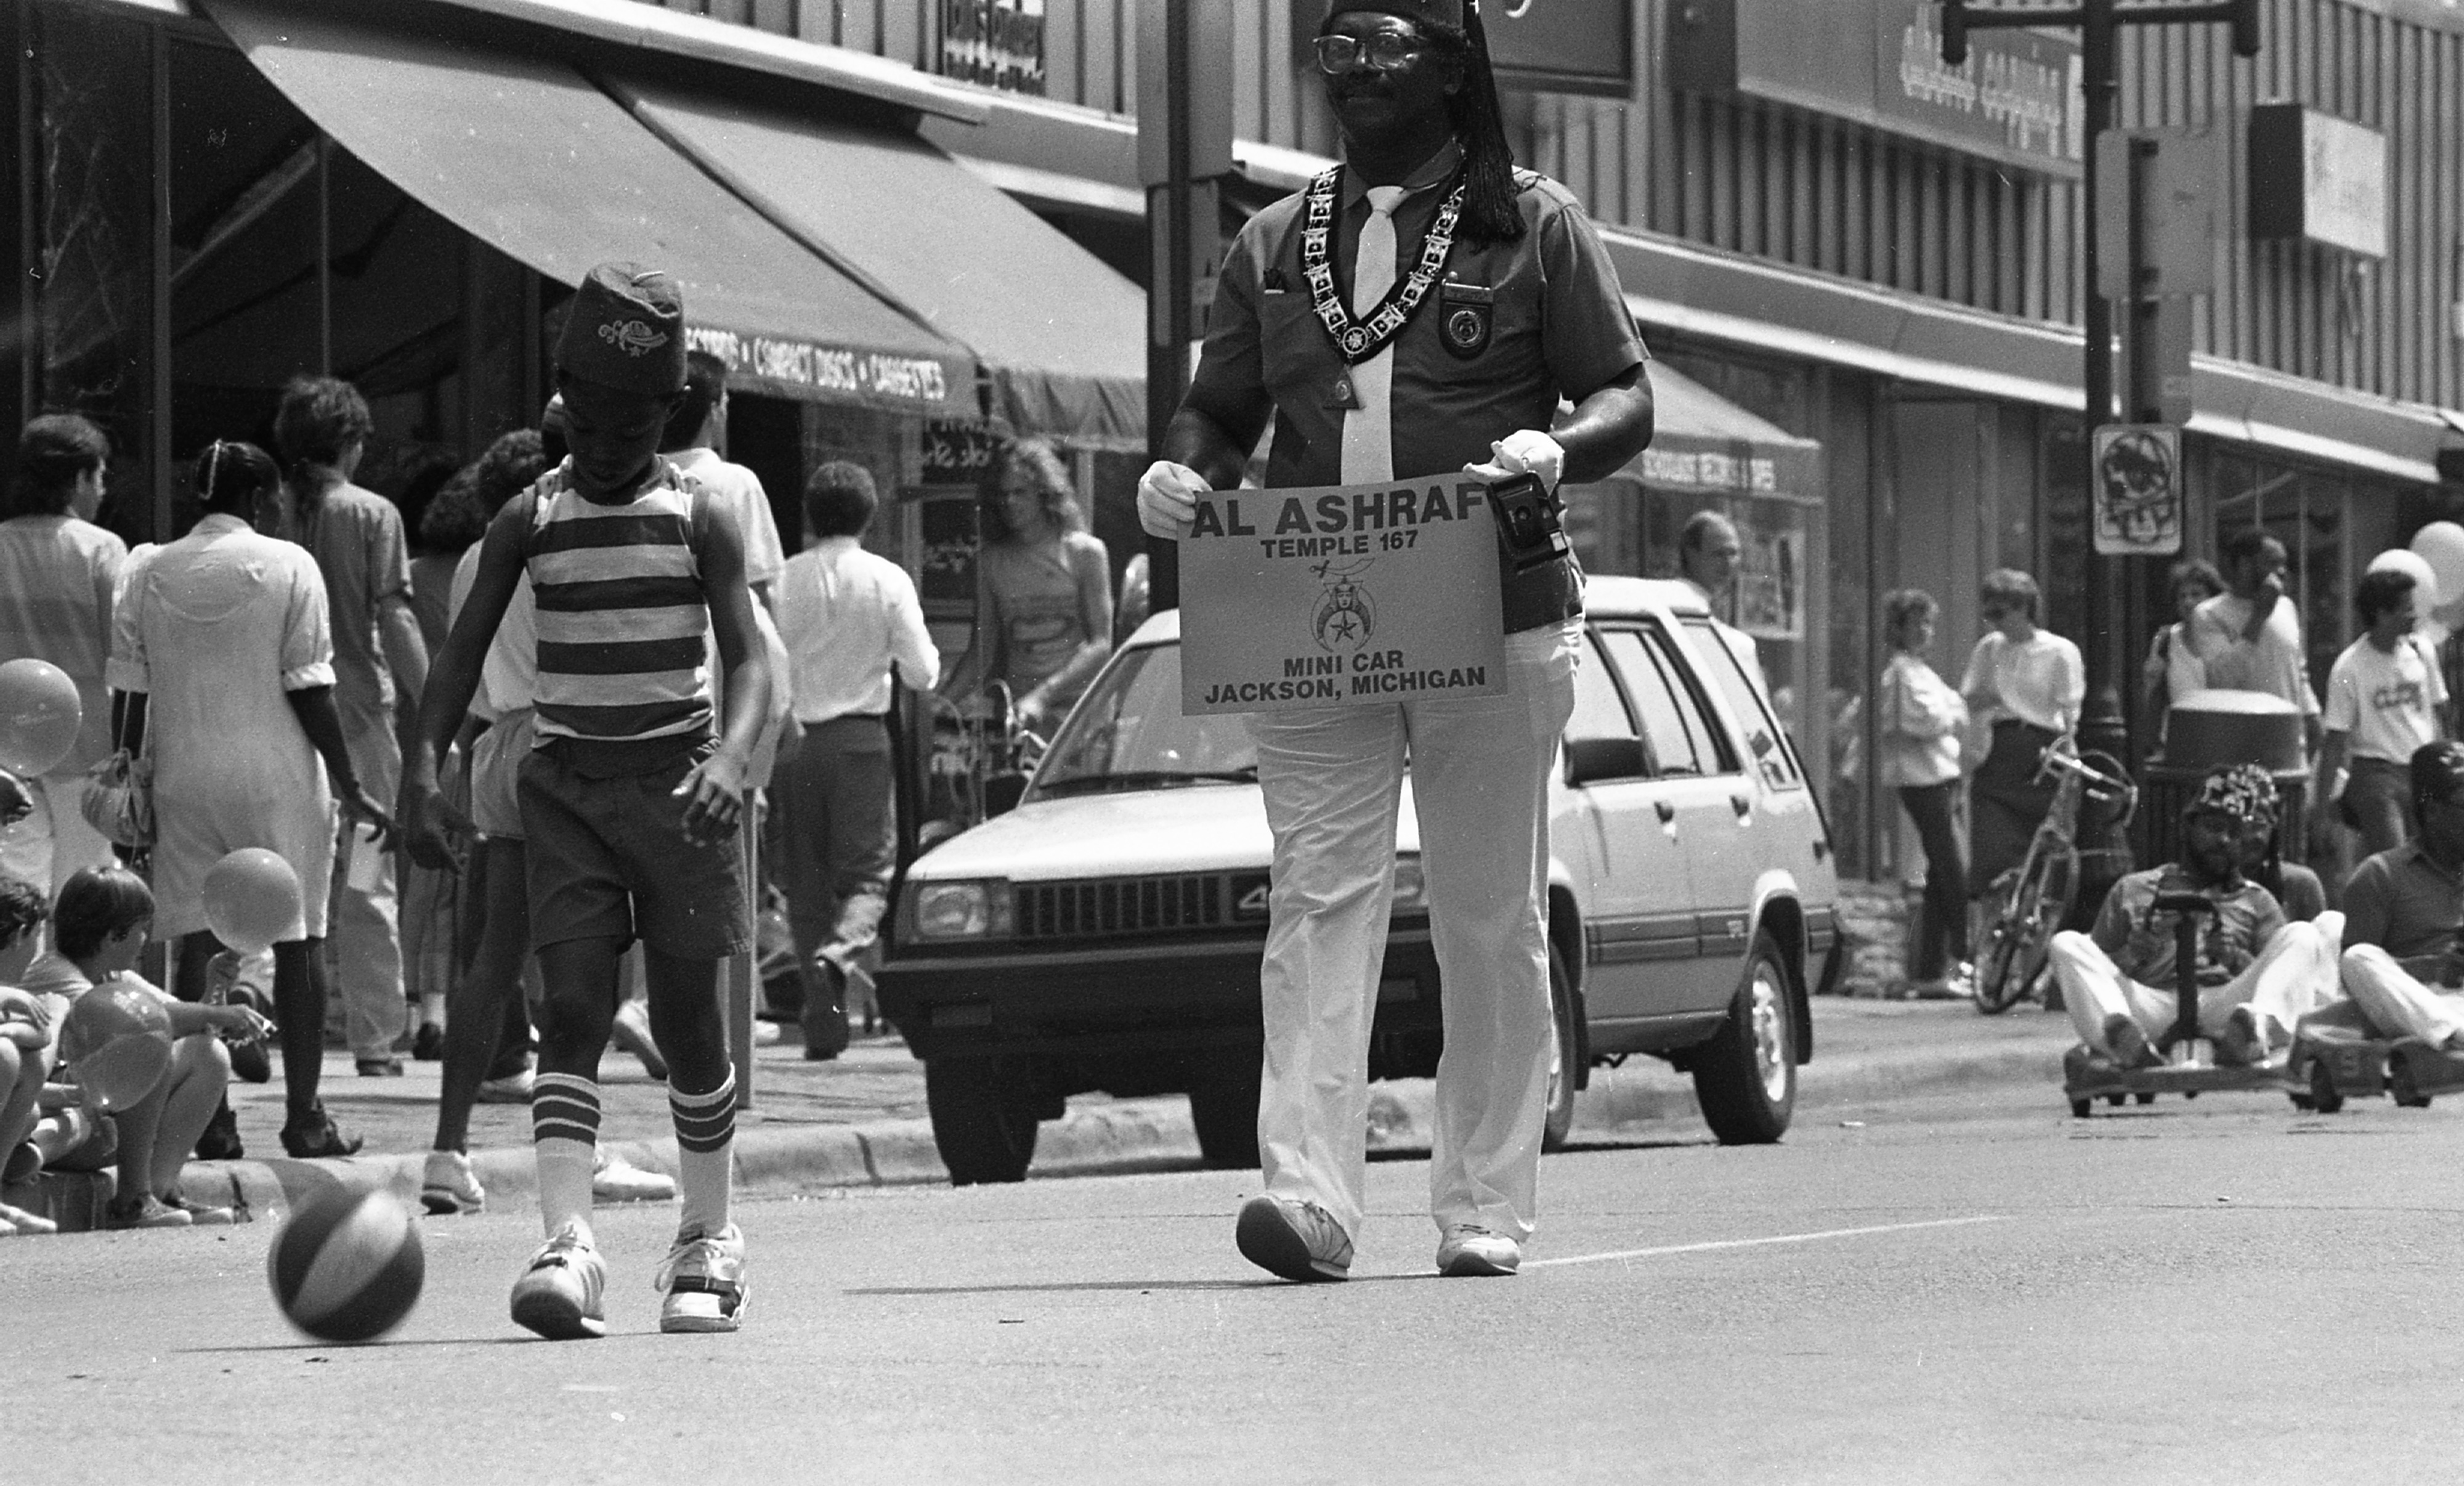 Al-Ashraf Temple 167 Members March In The Kelly-Miller Circus Parade, Liberty Street, June 23, 1989 image